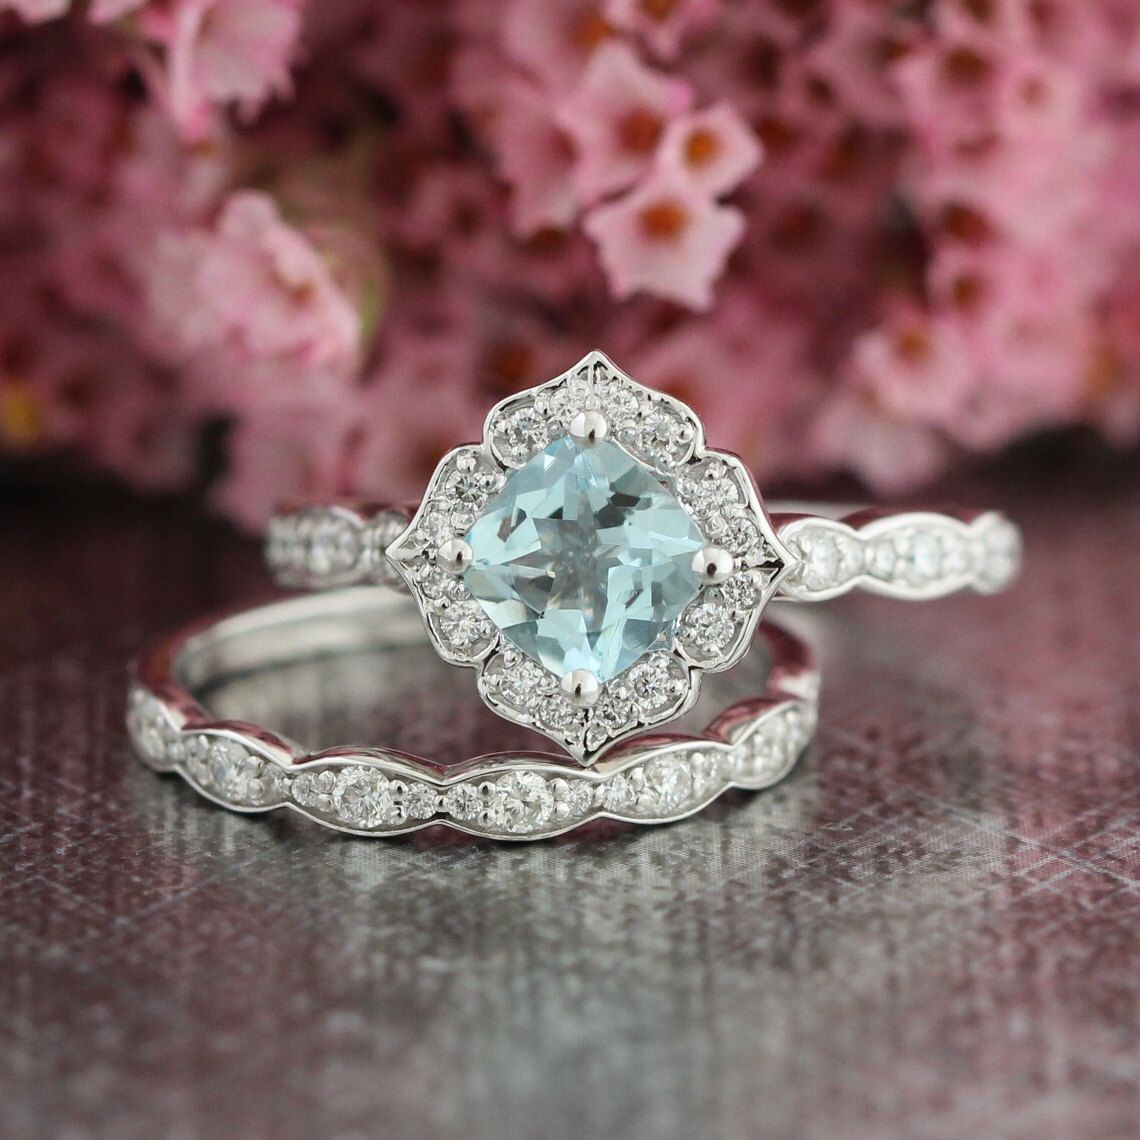 fa15d6de0ff Pin by Zazzie Bee on Rings | Pinterest | Engagement Rings, Wedding ...